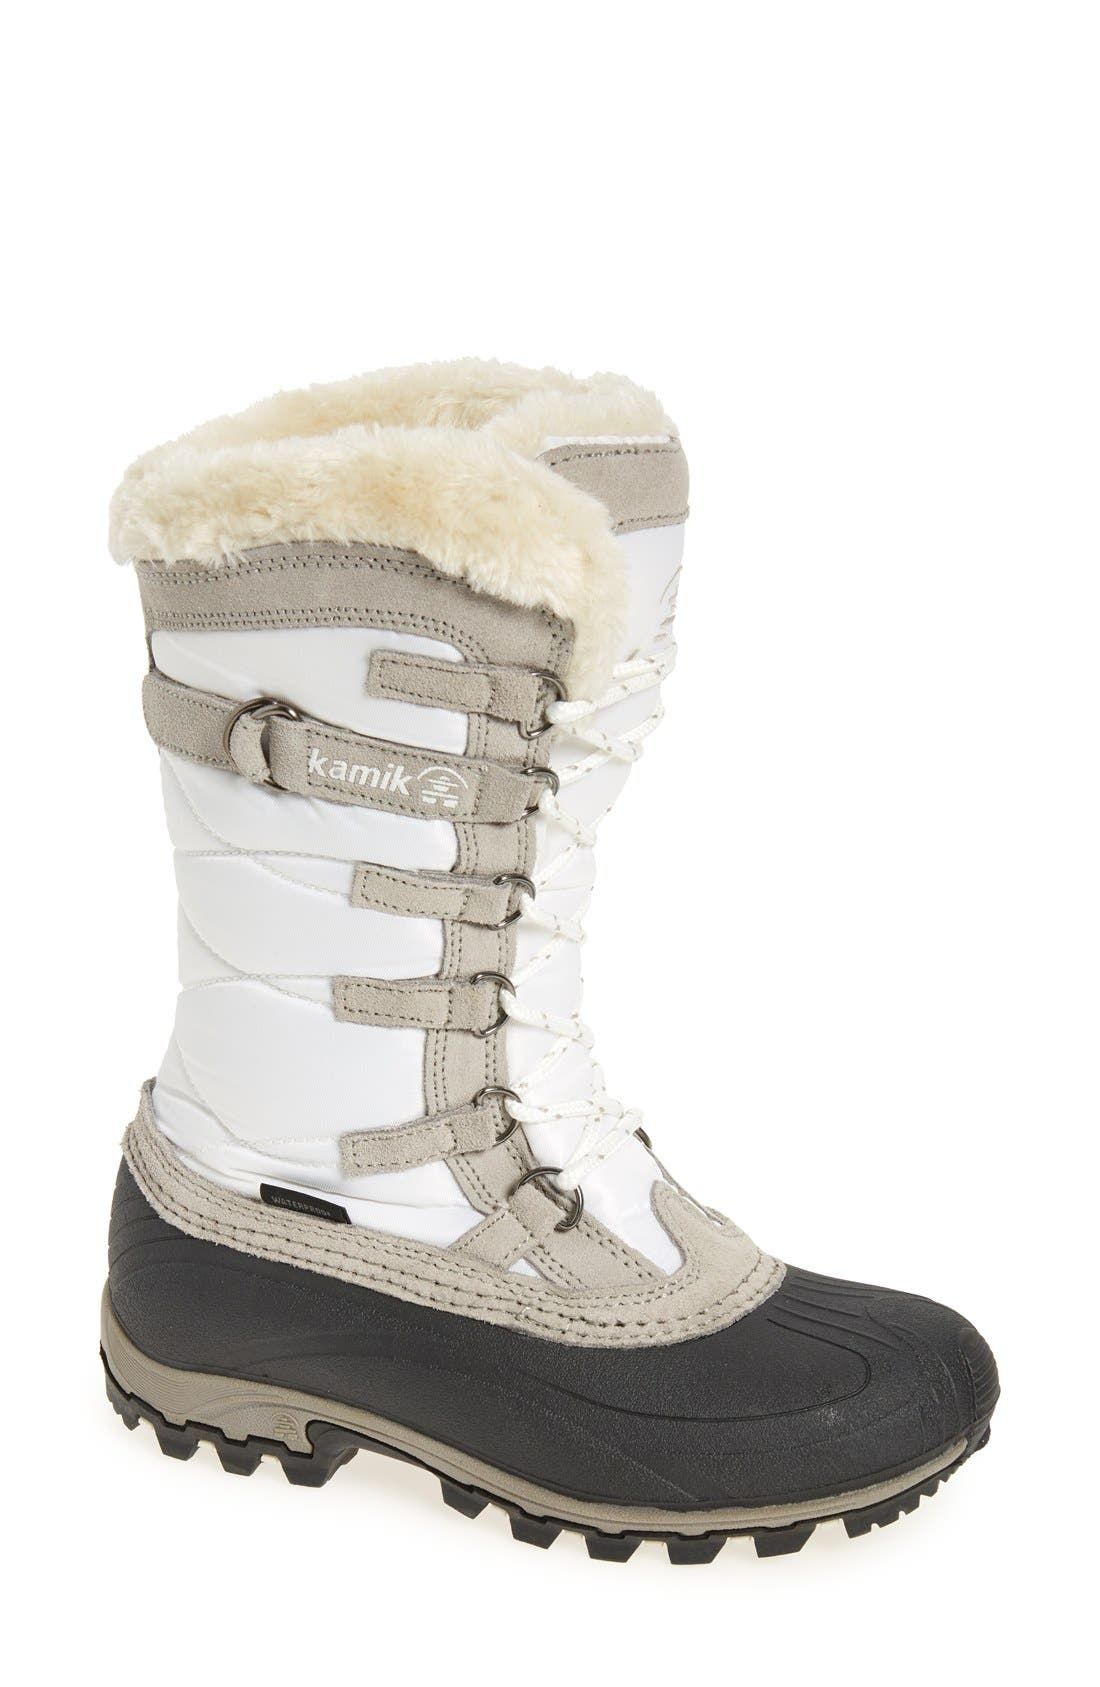 Kamik Snowvalley Waterproof Boot With Faux Fur Cuff, White